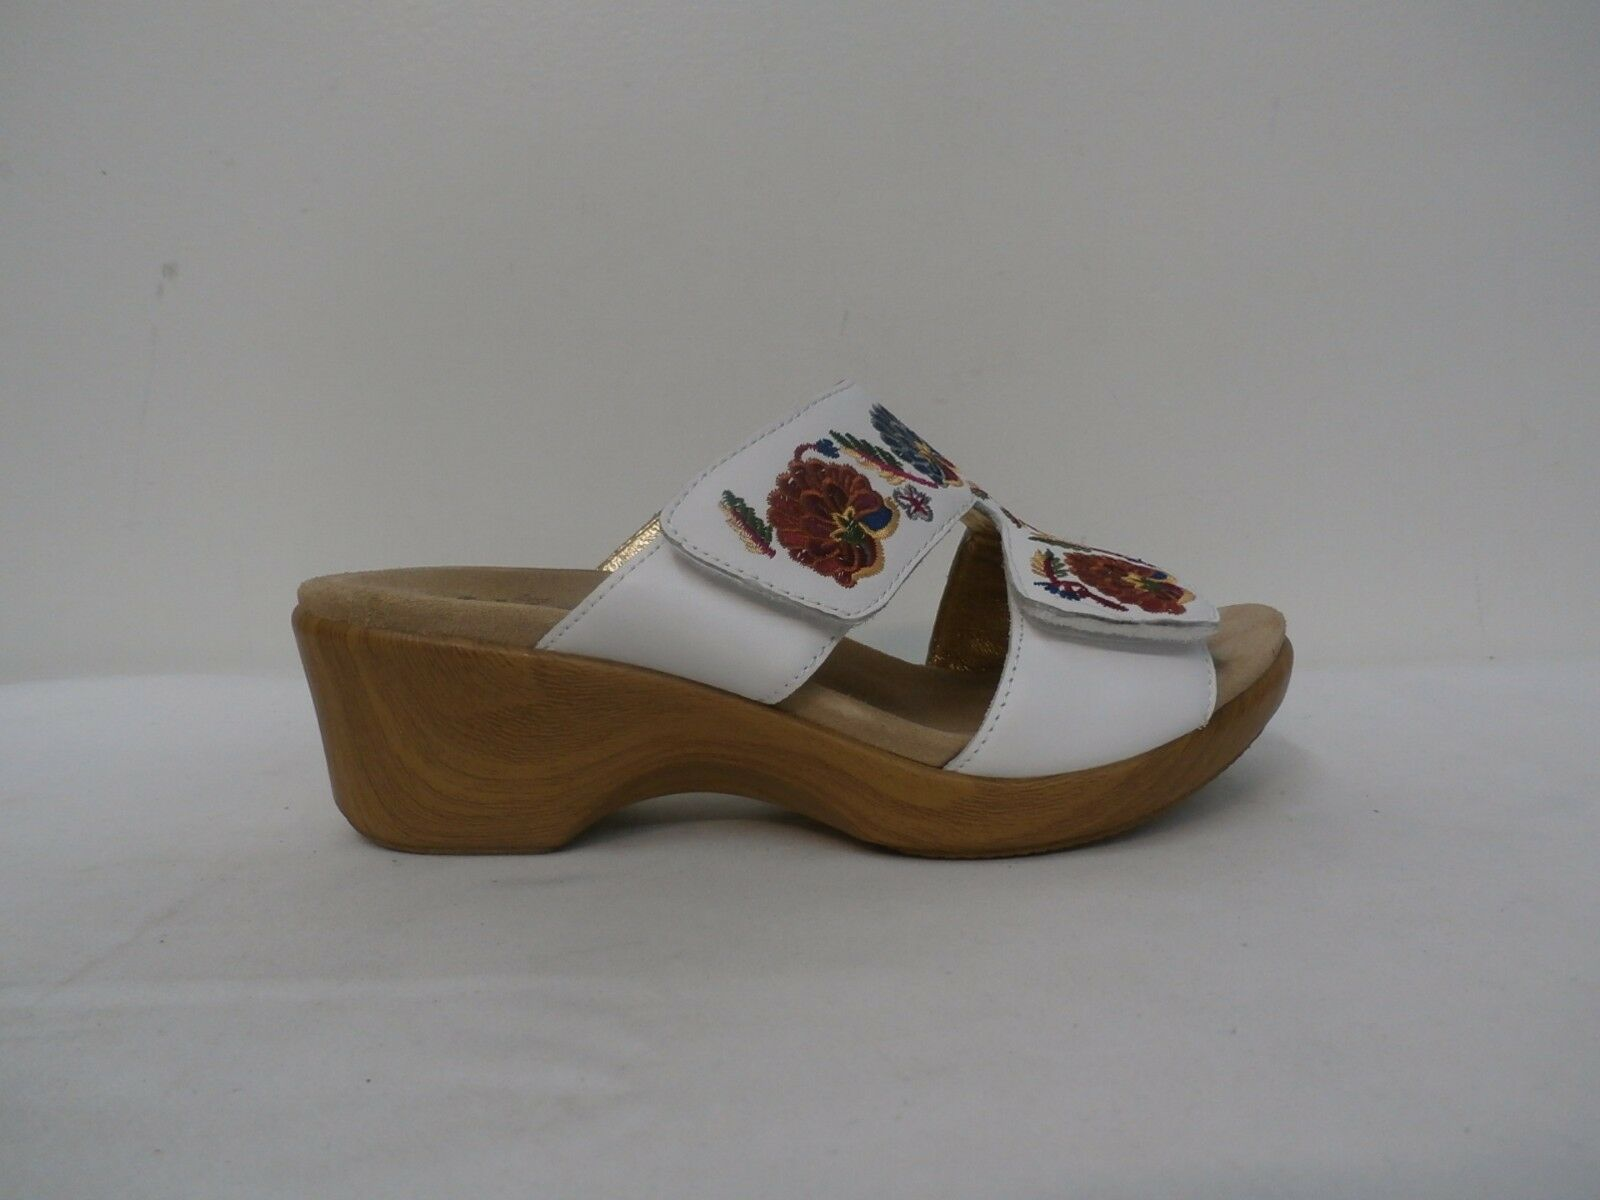 Alegria Embroidered Leather Slip-on Wedge Sandals - Linn WHITE NEEDLED & PINS 38